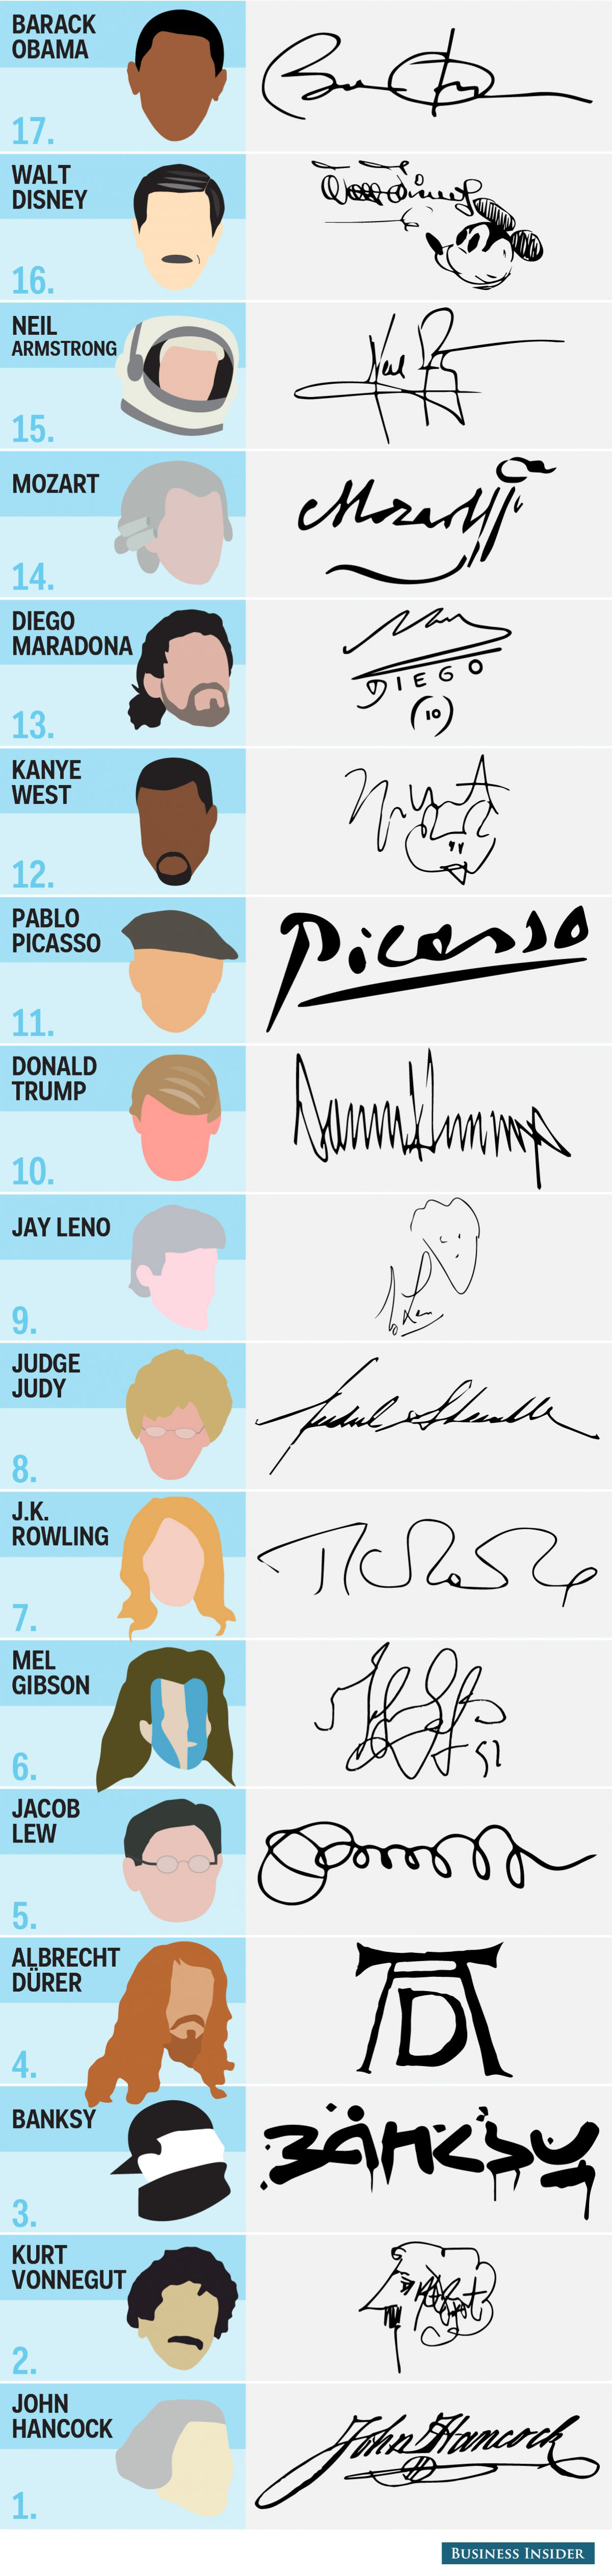 coolest signatures